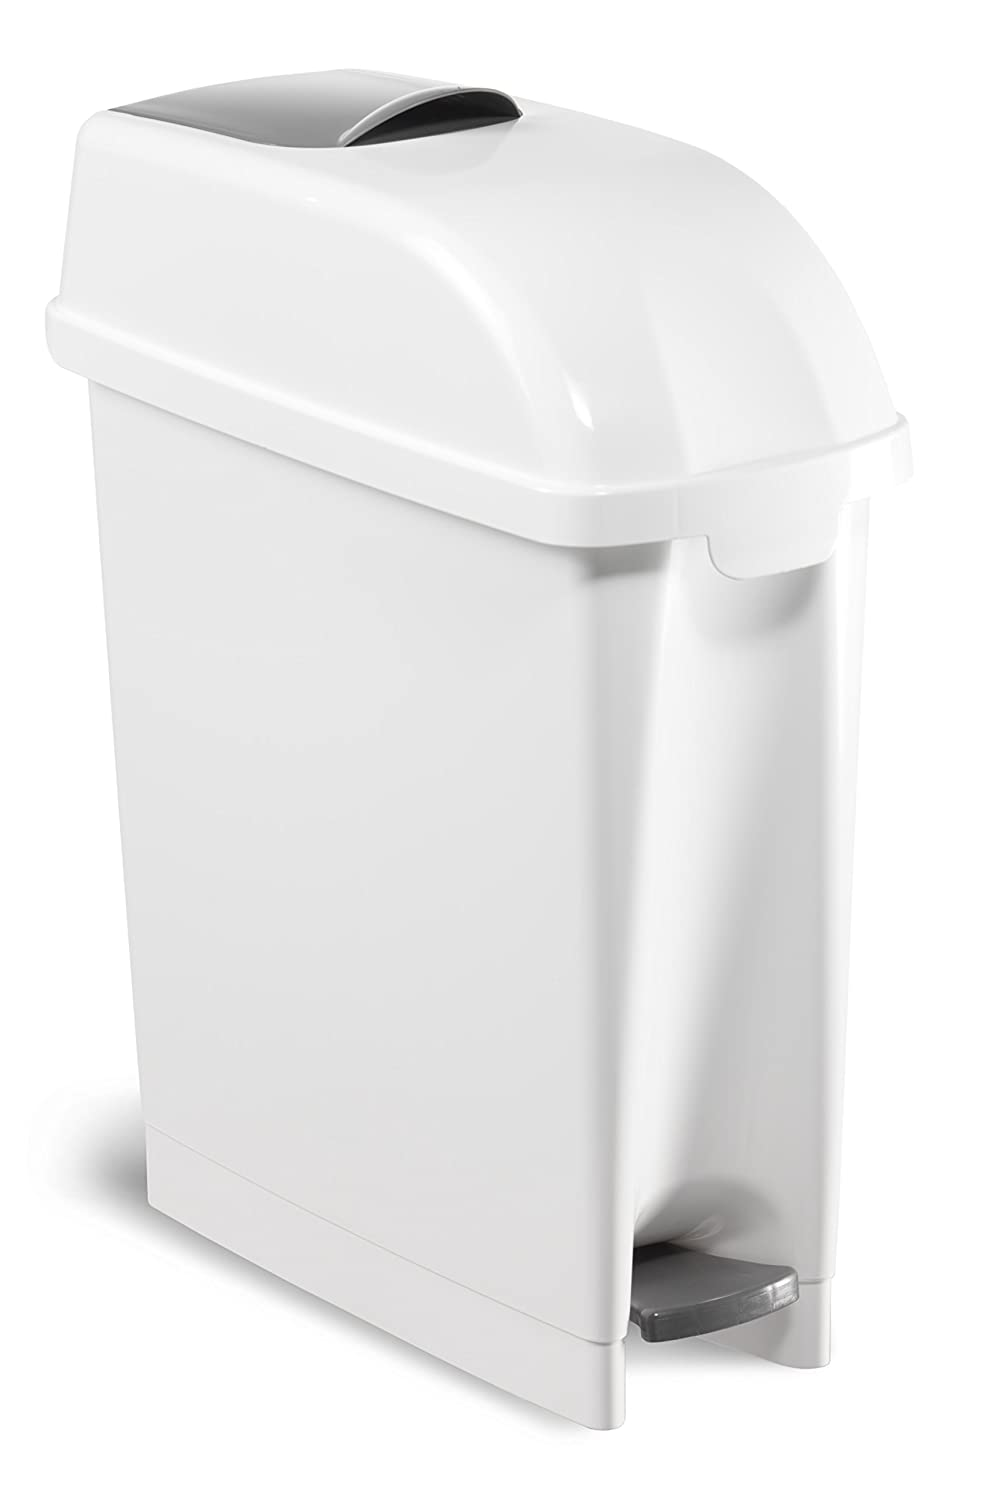 TTS Cleaning 00005480 Elle Polypropylene Container, Hatch, Pedal Lid, 17 Litre Capacity, White 17Litre Capacity TTS CLEANING S.R.L.